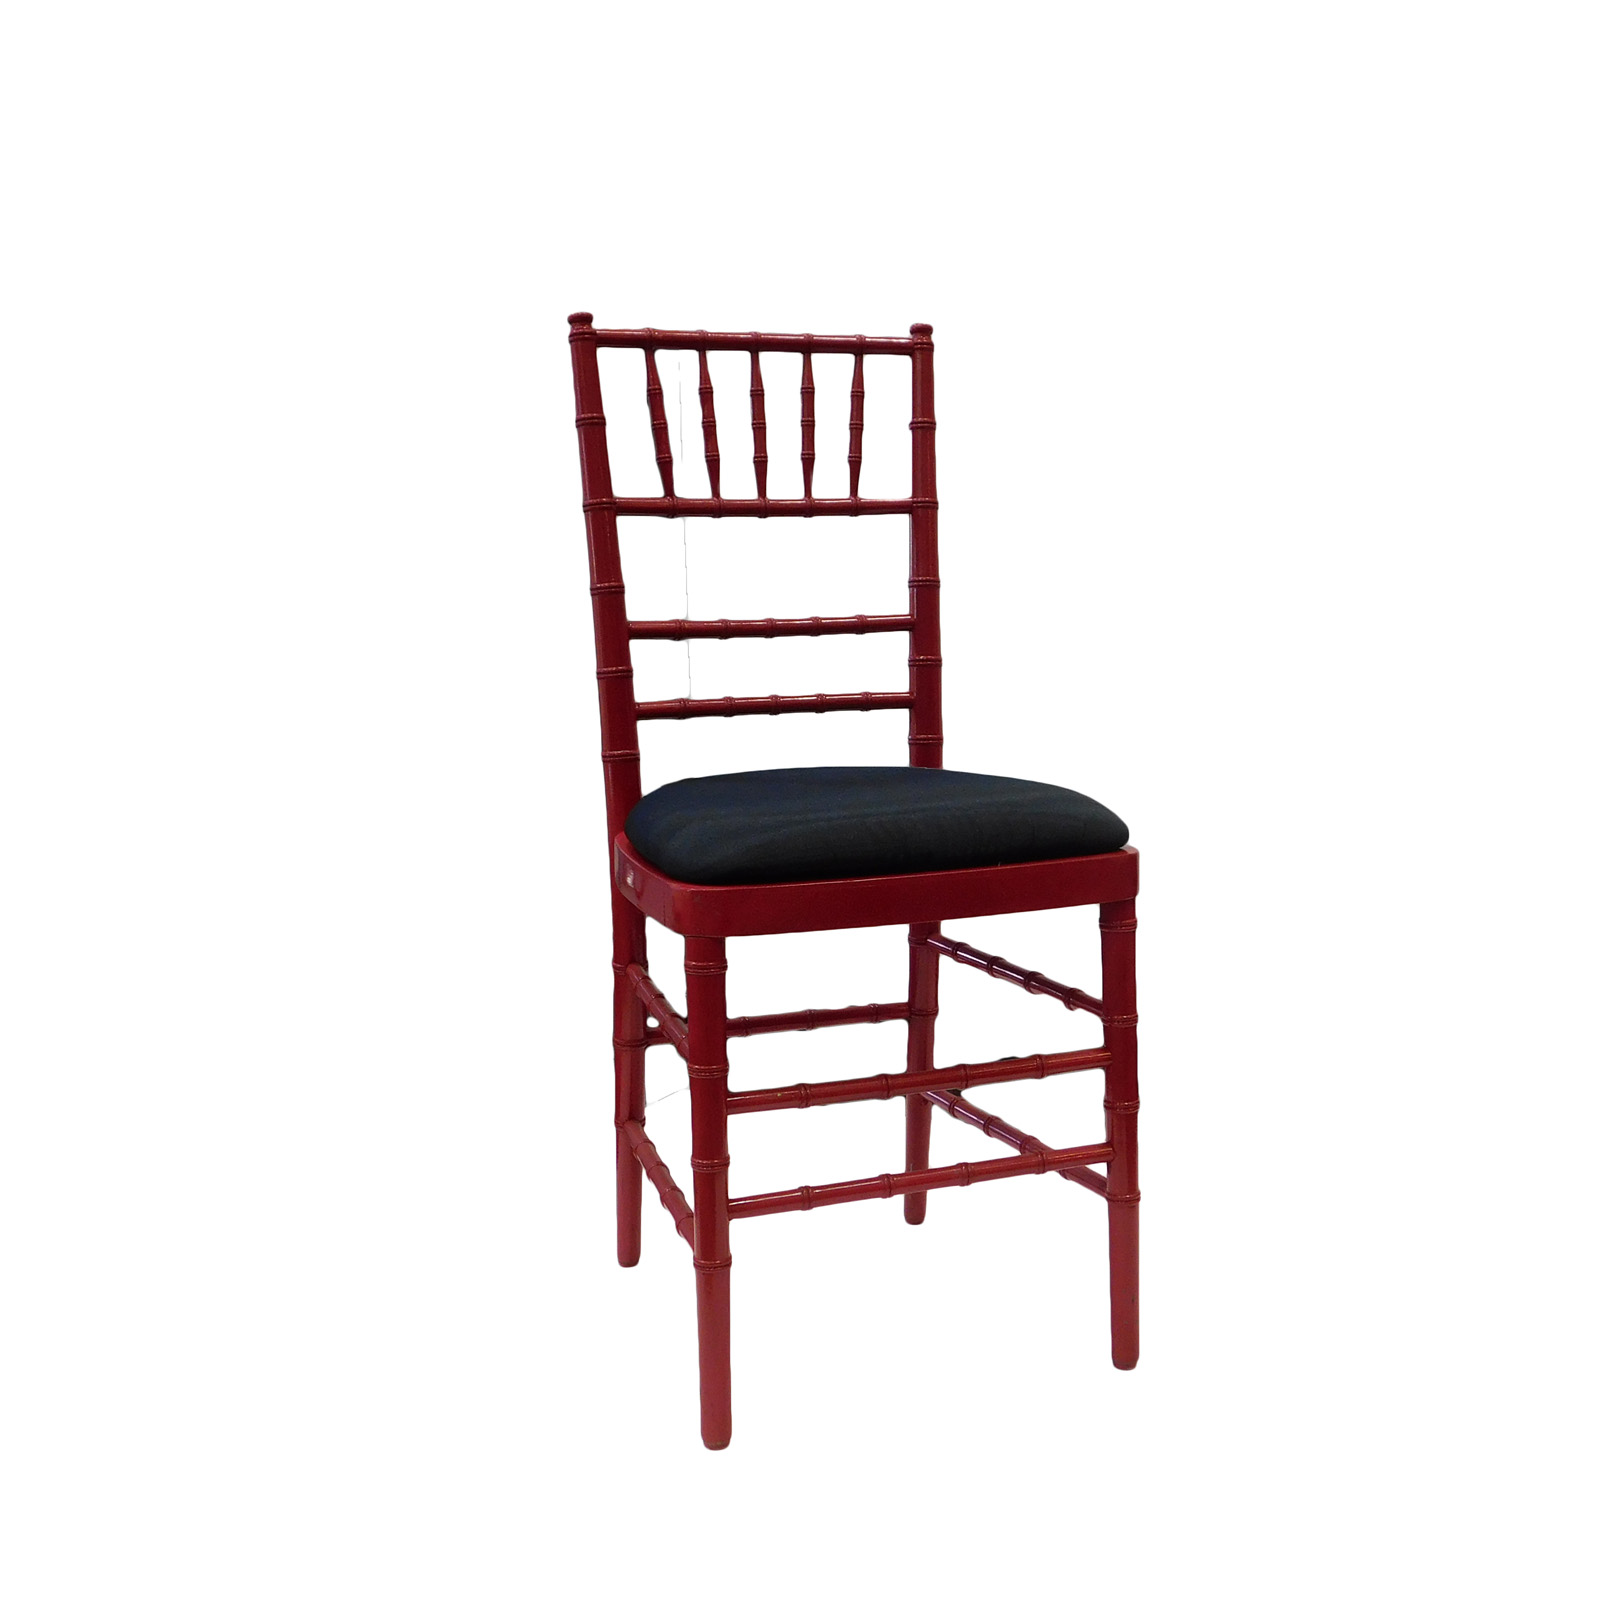 Chiavari Chairs Chiavari Chairs